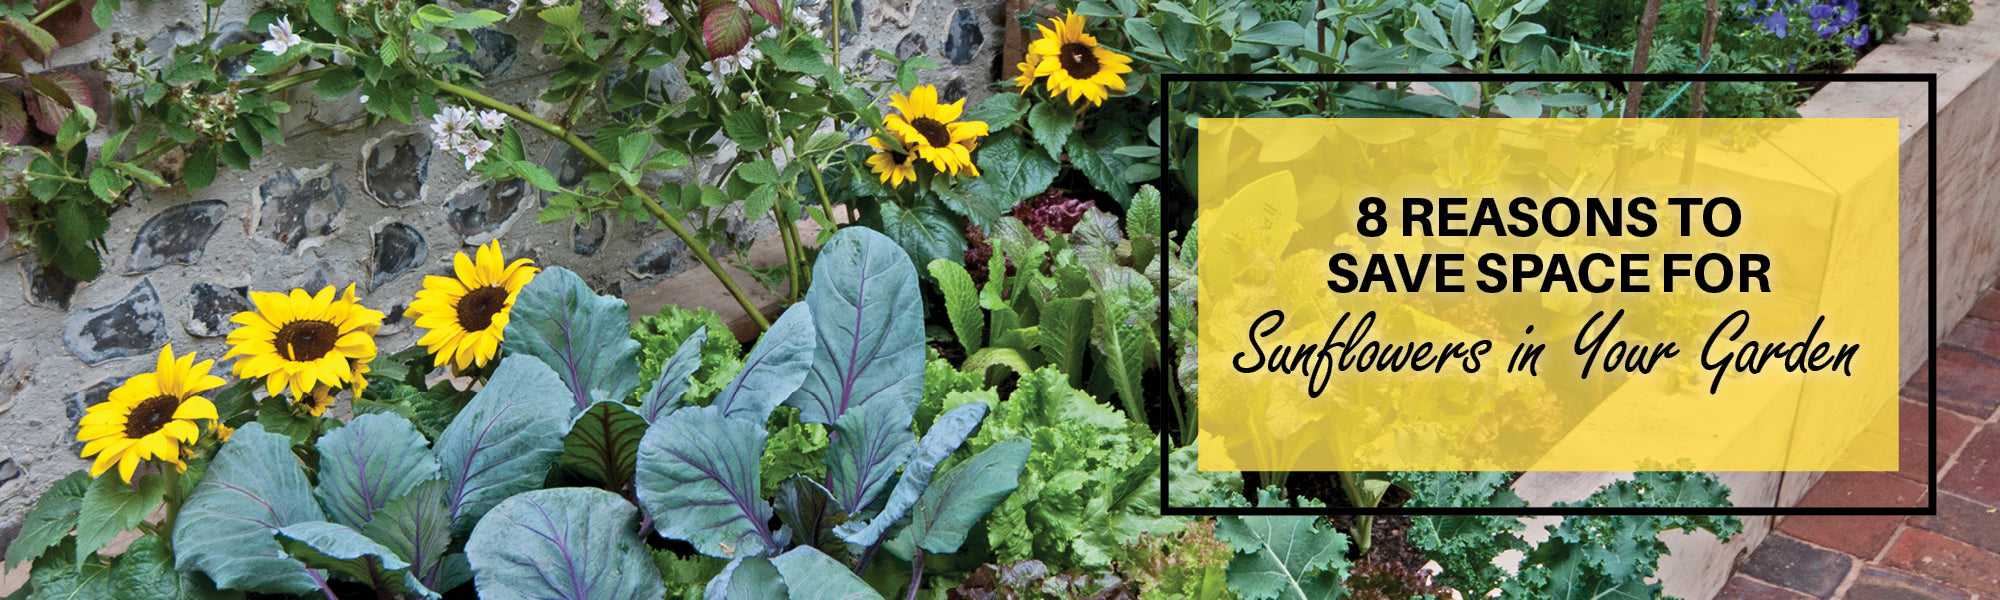 8 Reasons to Save Space for Sunflowers in Your Garden